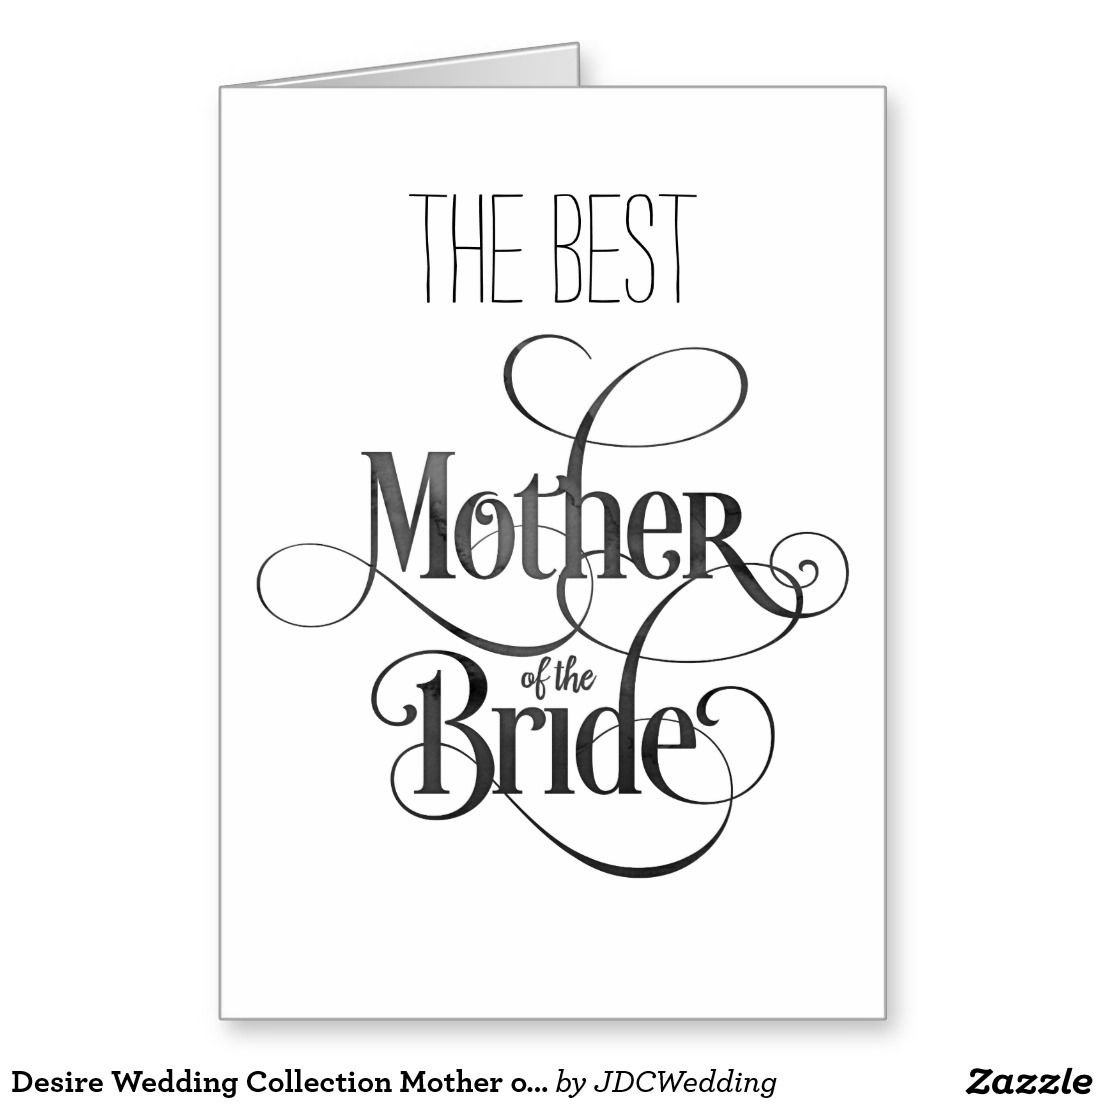 Desire wedding collection mother of the bride desire wedding collection mother of the bride greeting card aug 23 m4hsunfo